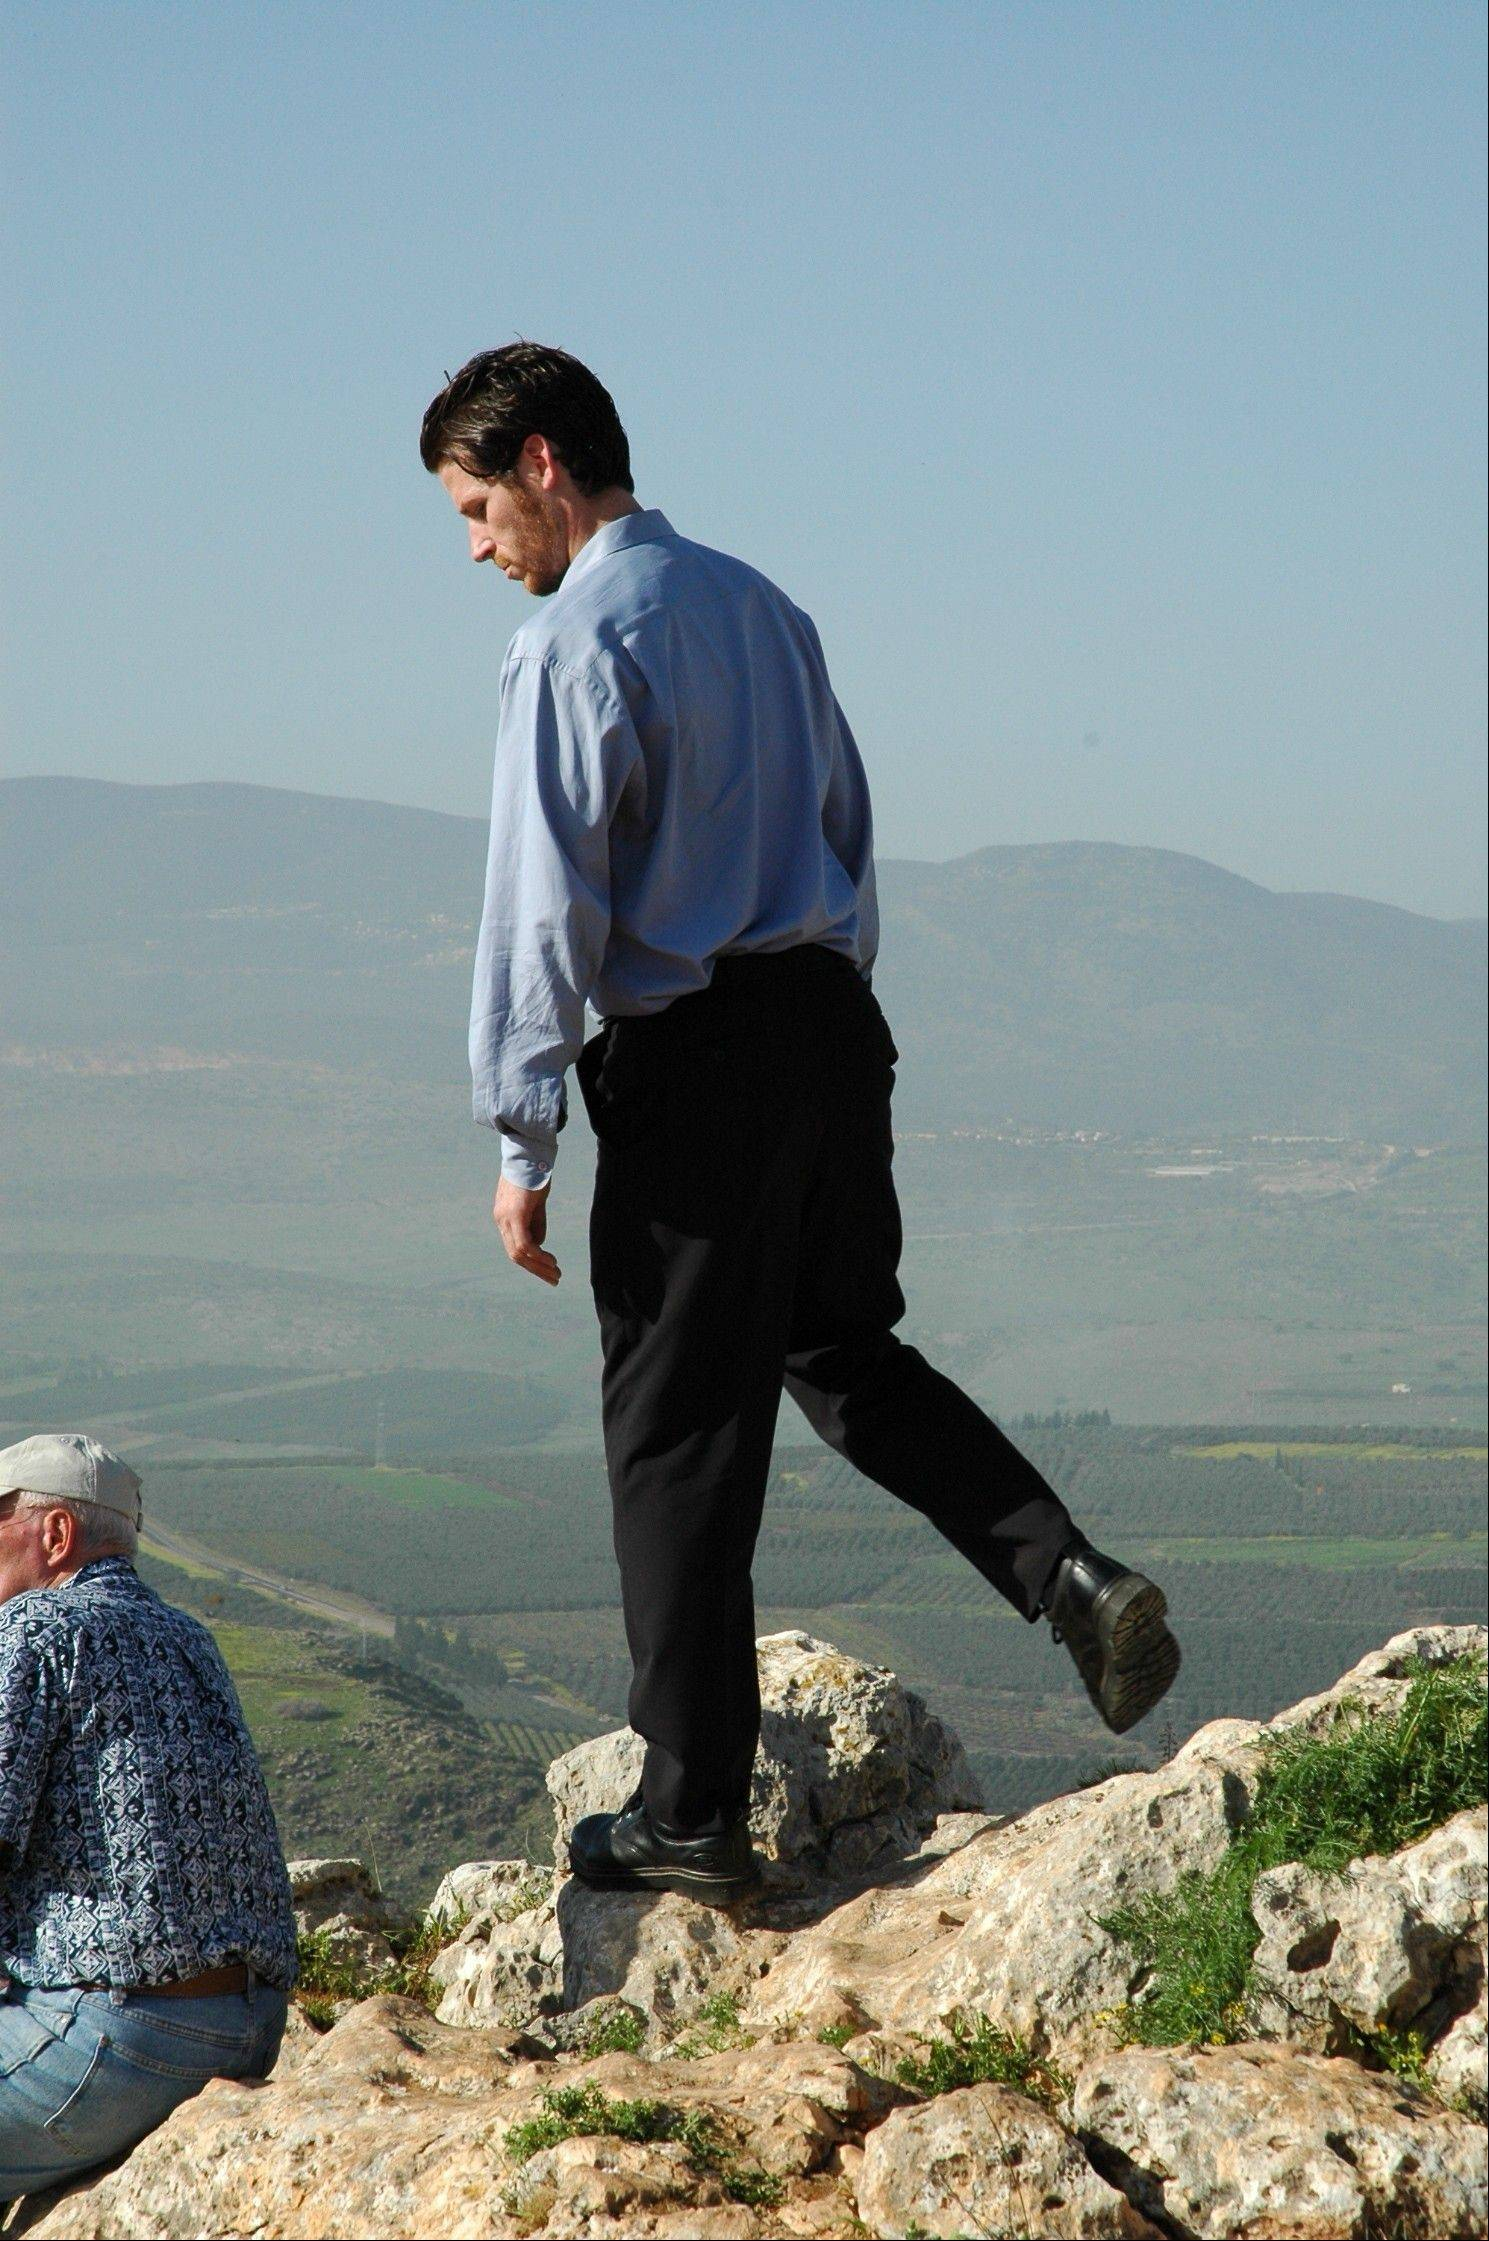 While attending graduate school in Jerusalem, Lombard native Tom Meyer visited many biblical locations, such as this spot overlooking the Sea of Galilee.